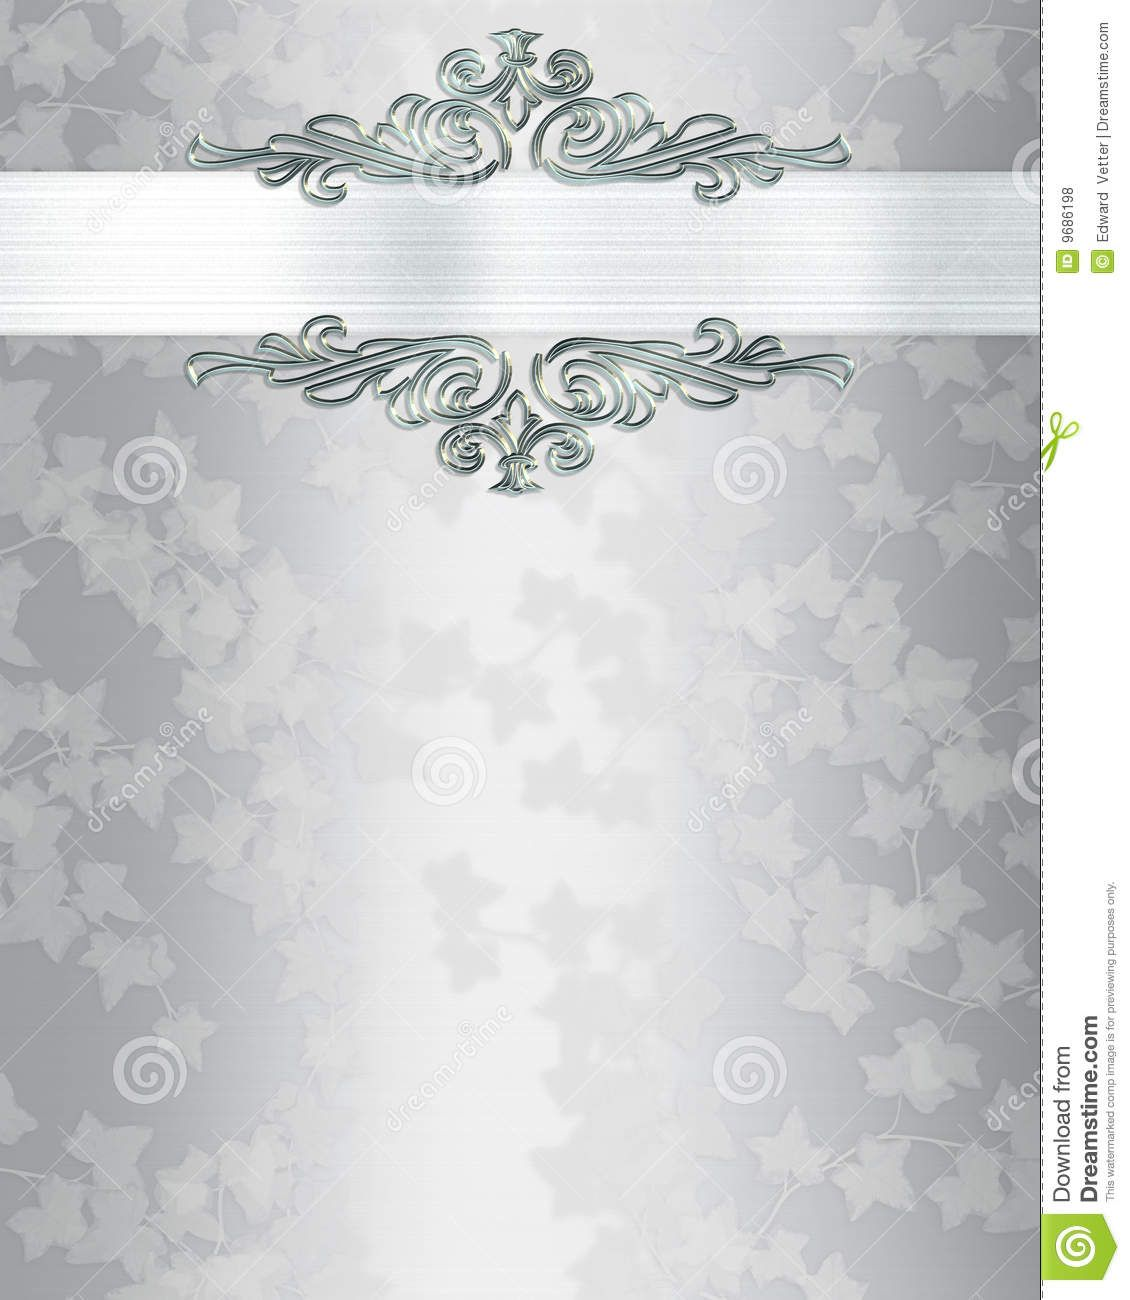 Silver Wedding Invitation Templates | Wedding invitation background ...